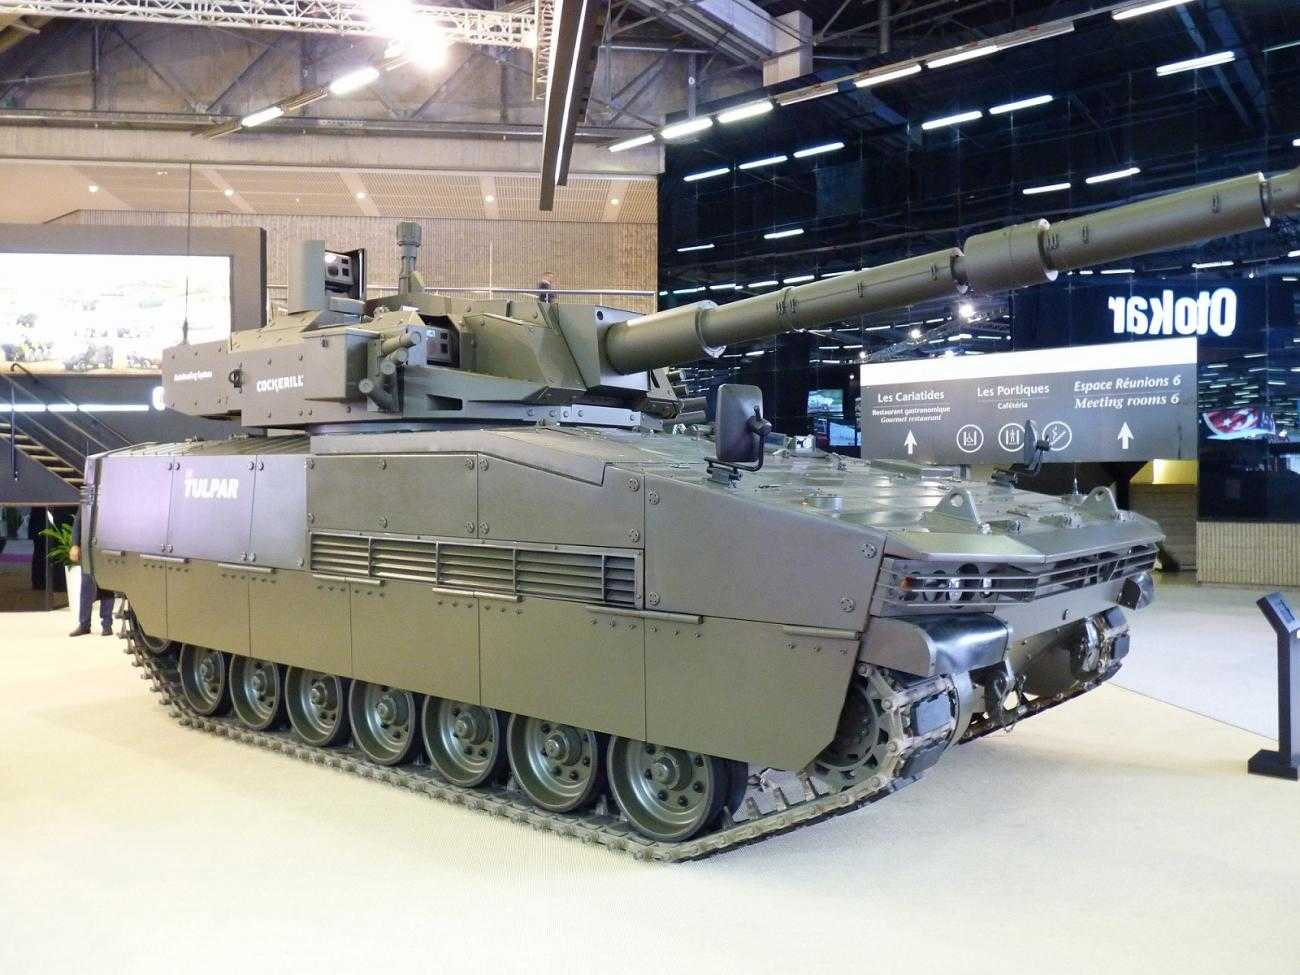 An Otokar tank on display at Eurosatory 2018